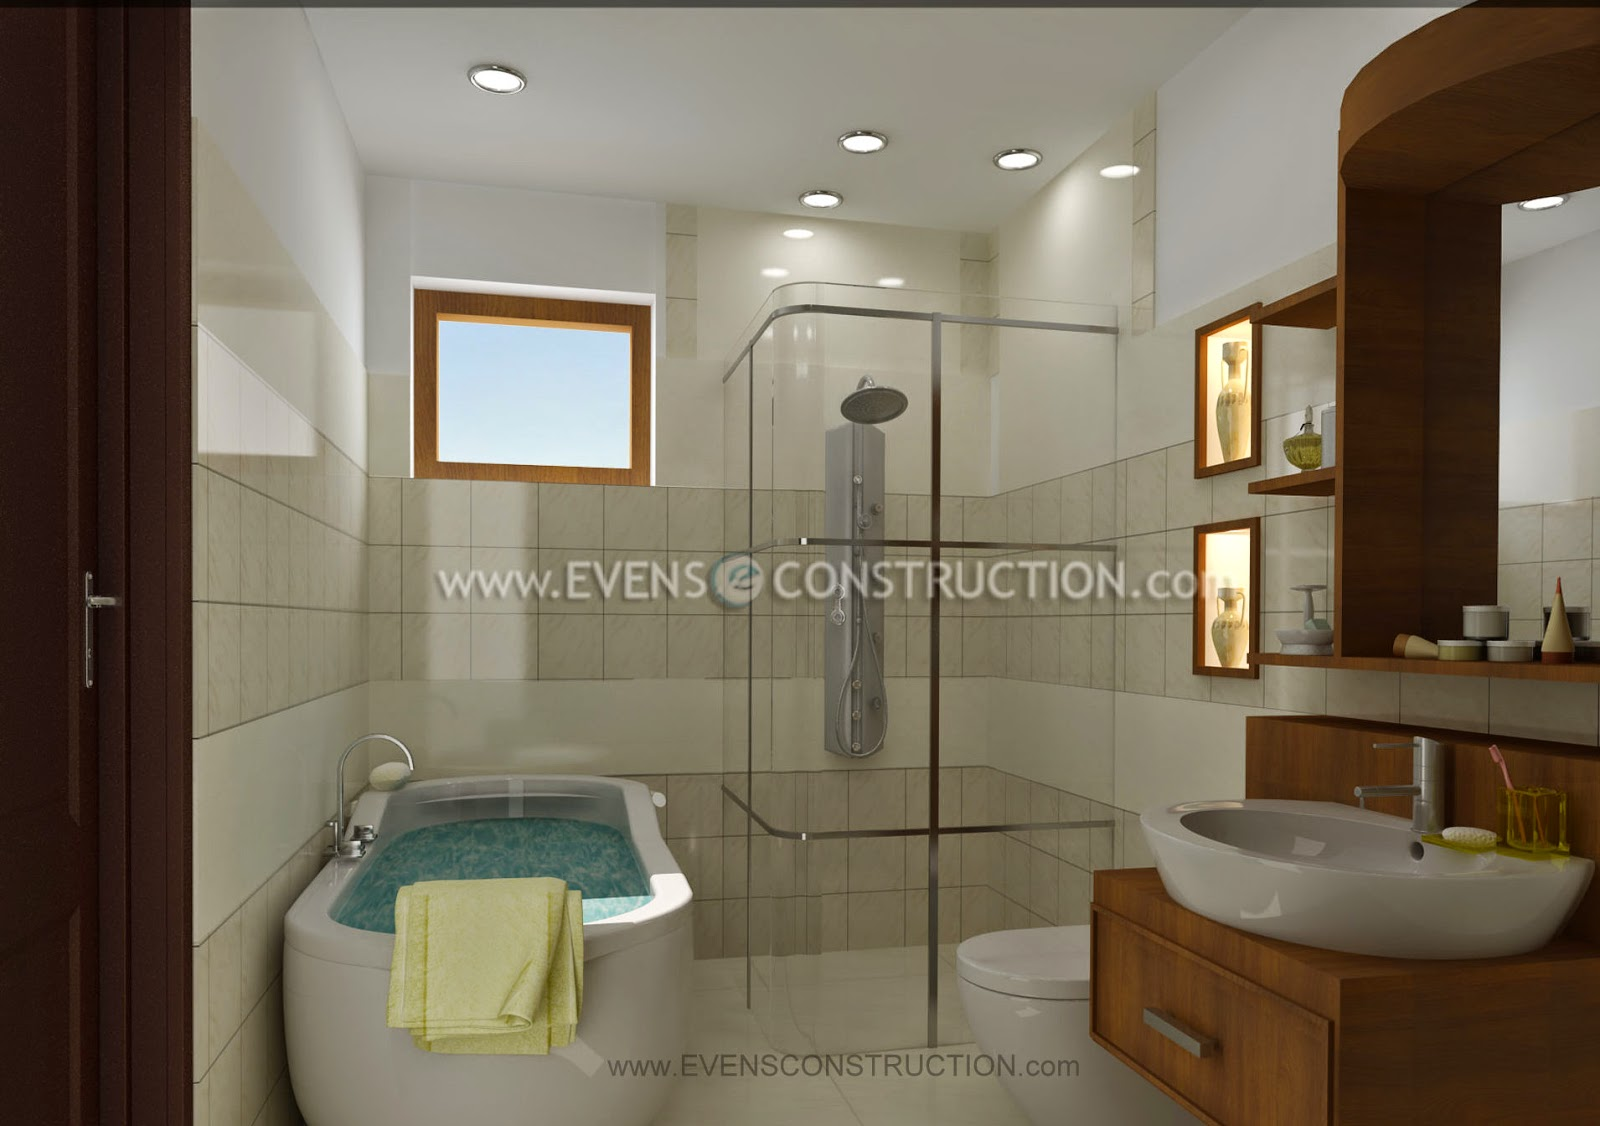 Evens construction pvt ltd bathroom designed for kerala home - Bathroom cabinets kerala ...